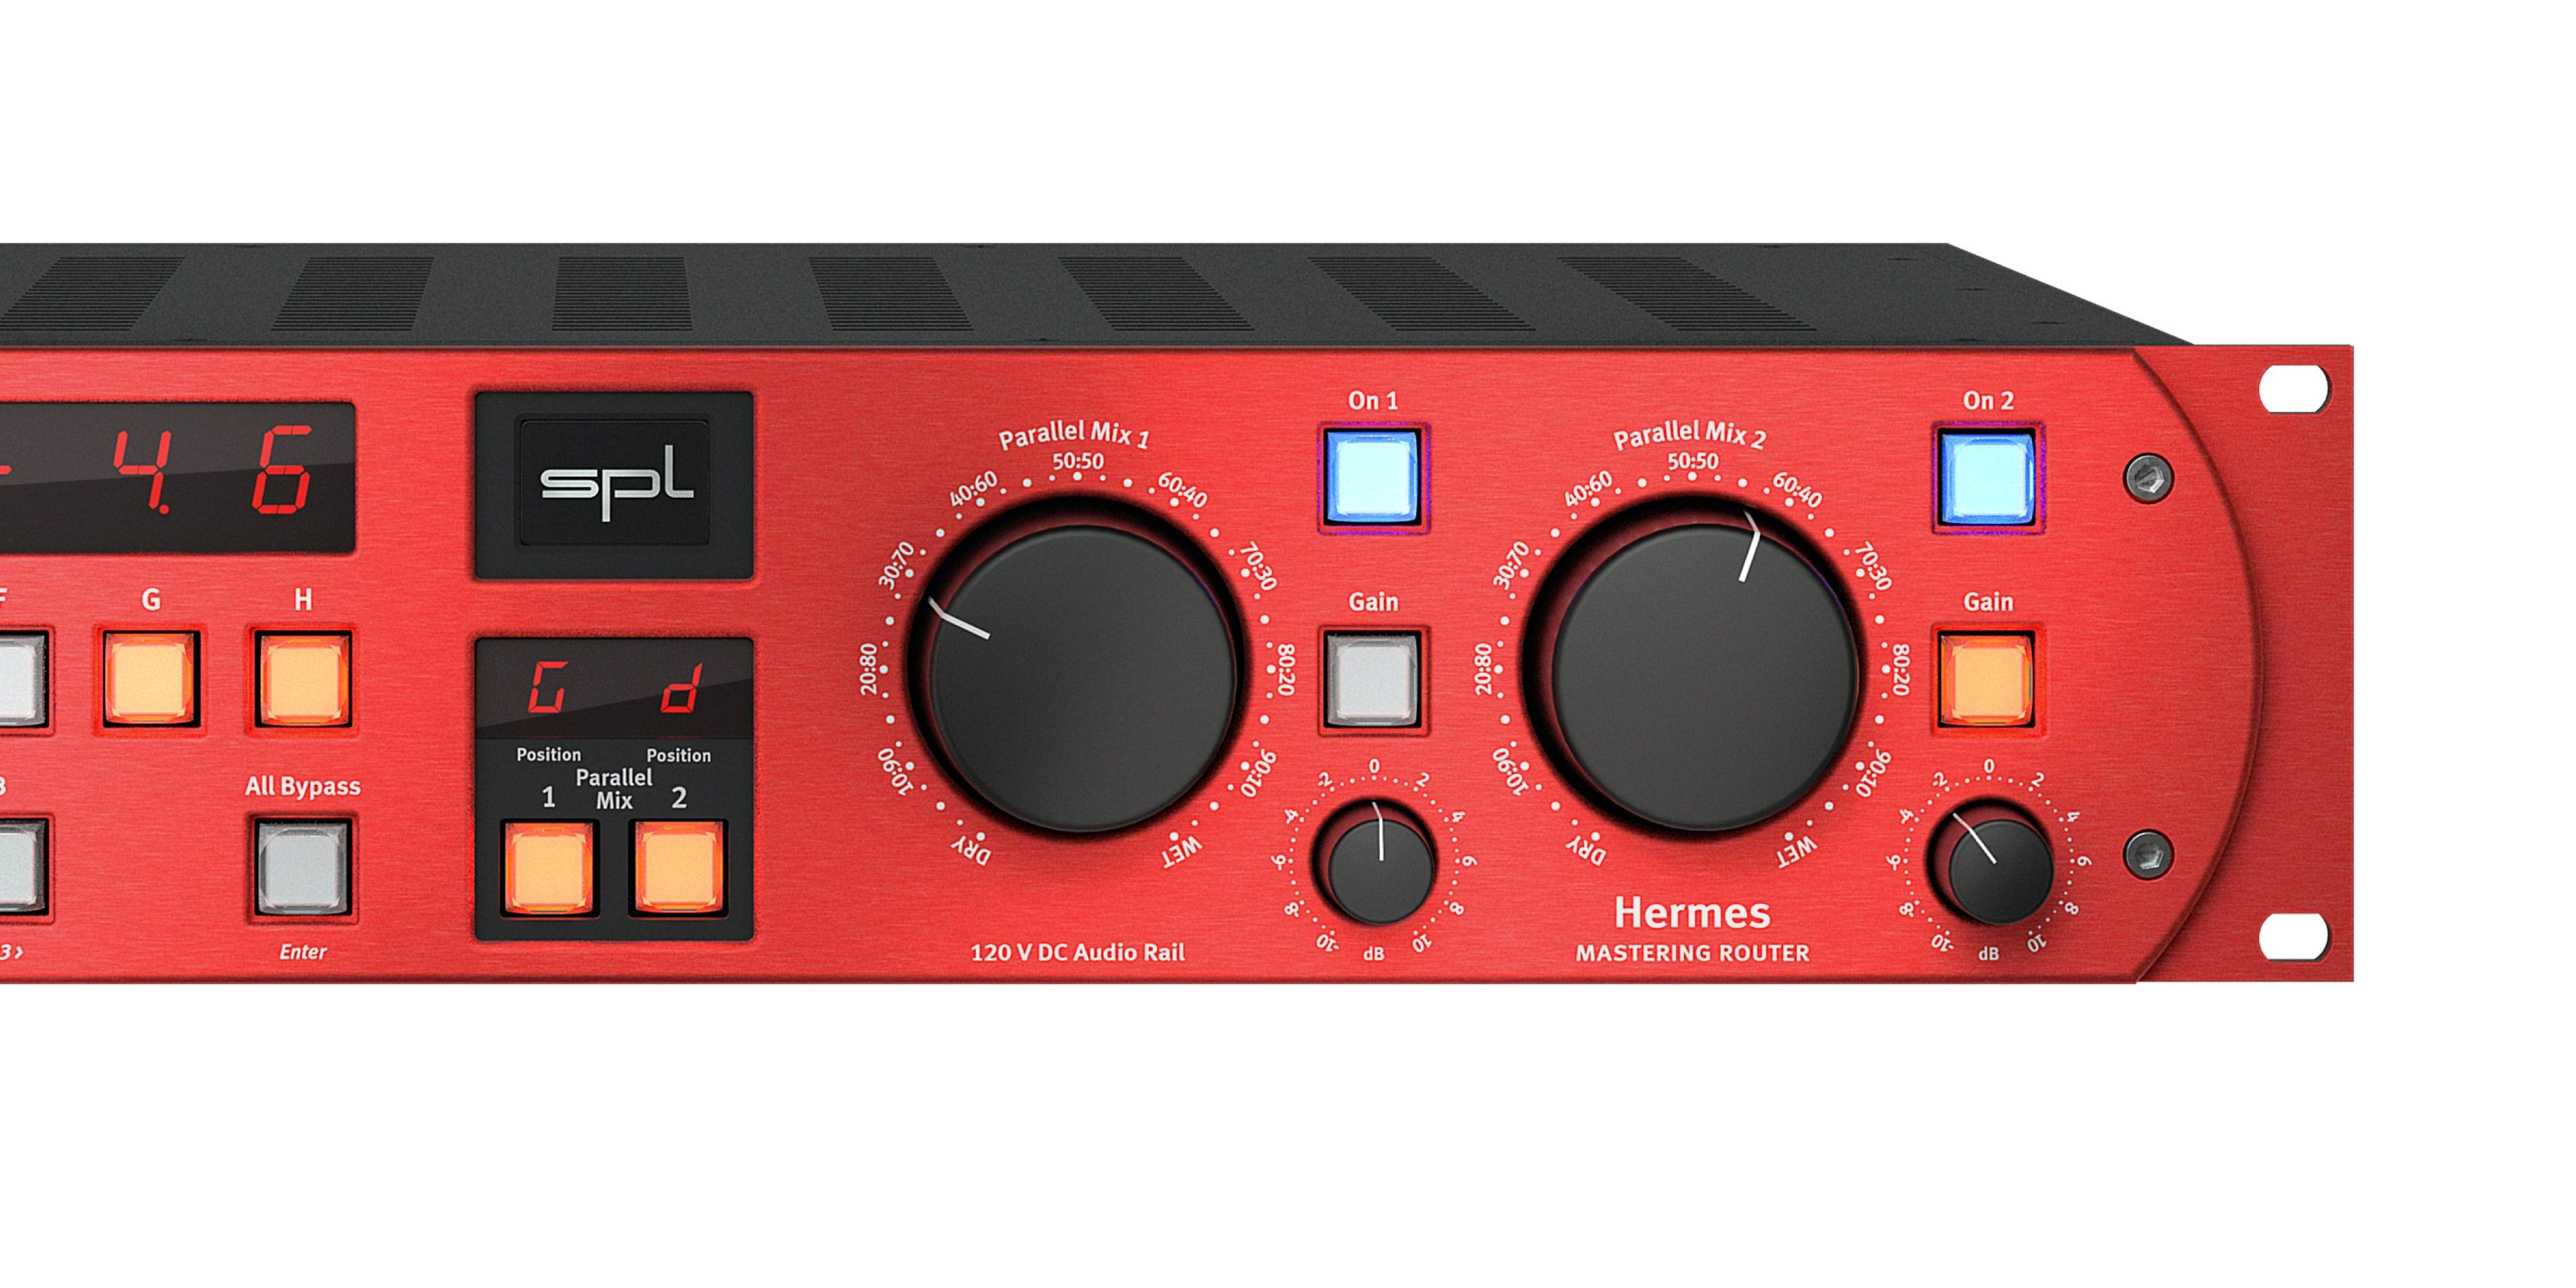 SPL Hermes Mastering Router with dual Parallel Mix